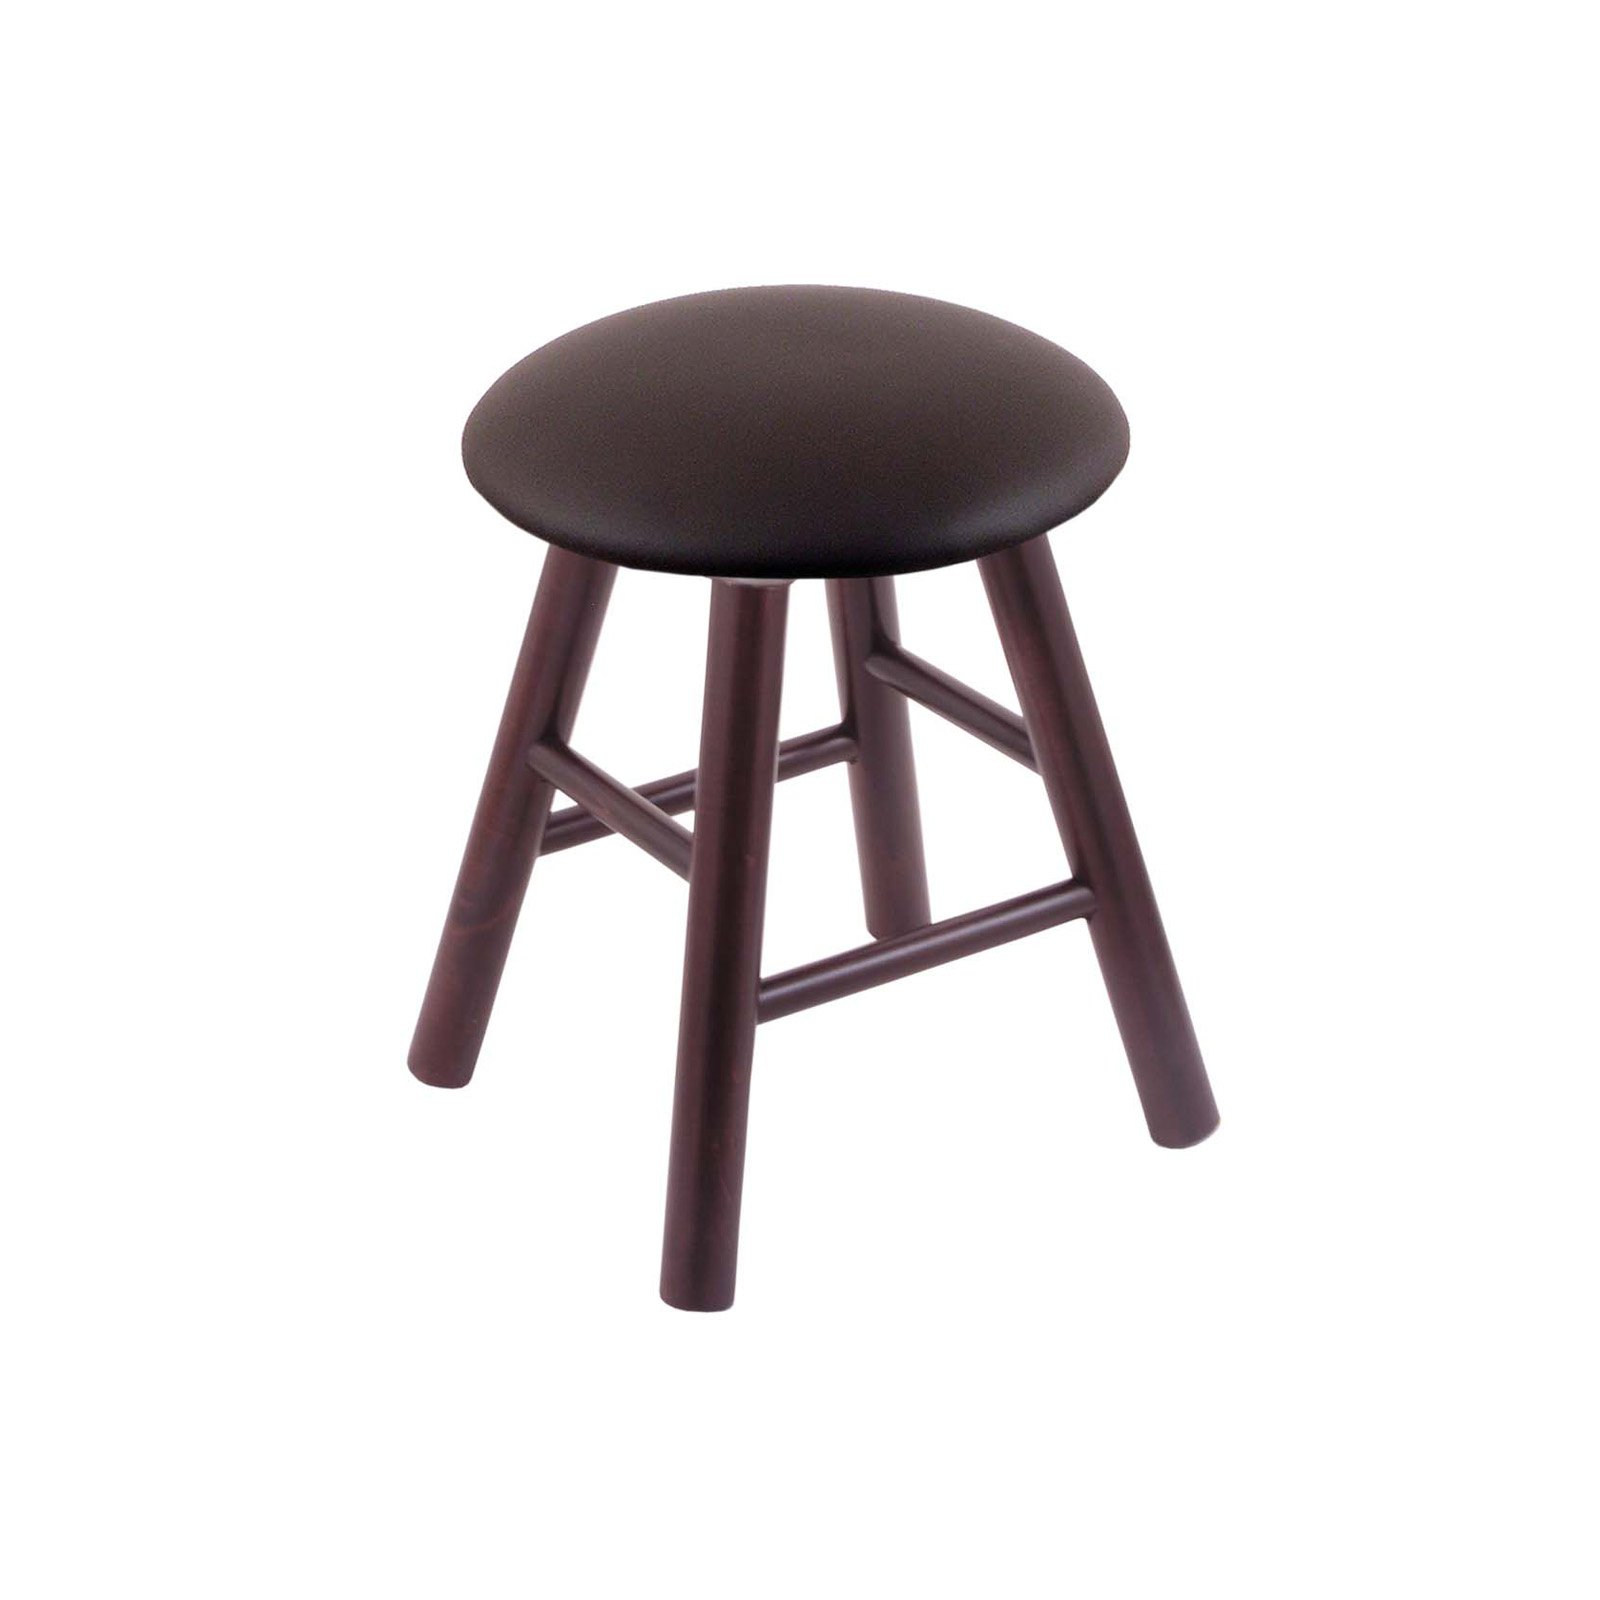 Remarkable Holland Maple Vanity Stool With Faux Leather Seat Alphanode Cool Chair Designs And Ideas Alphanodeonline